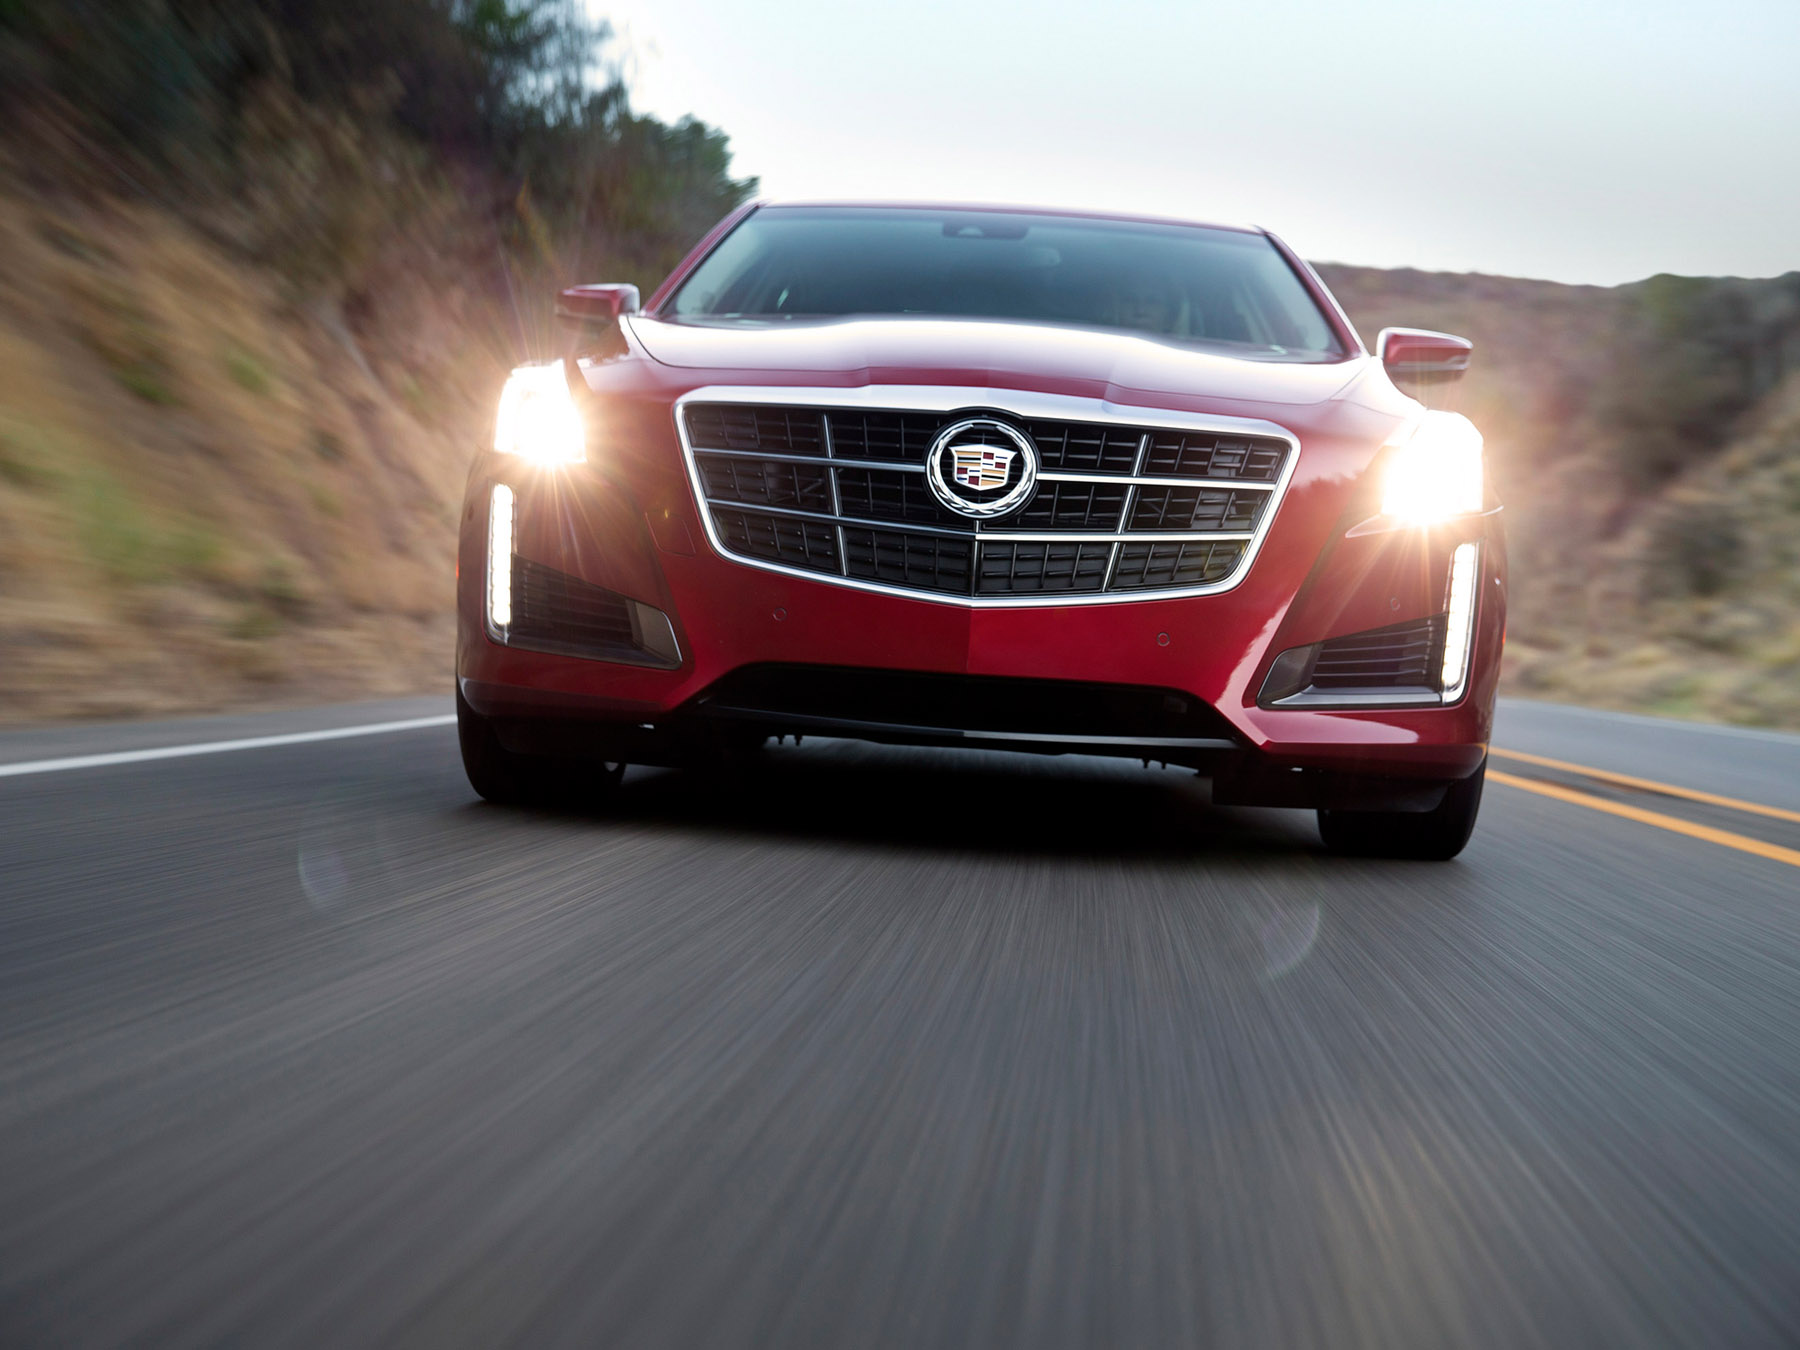 Red Cadillac car driving on the highway